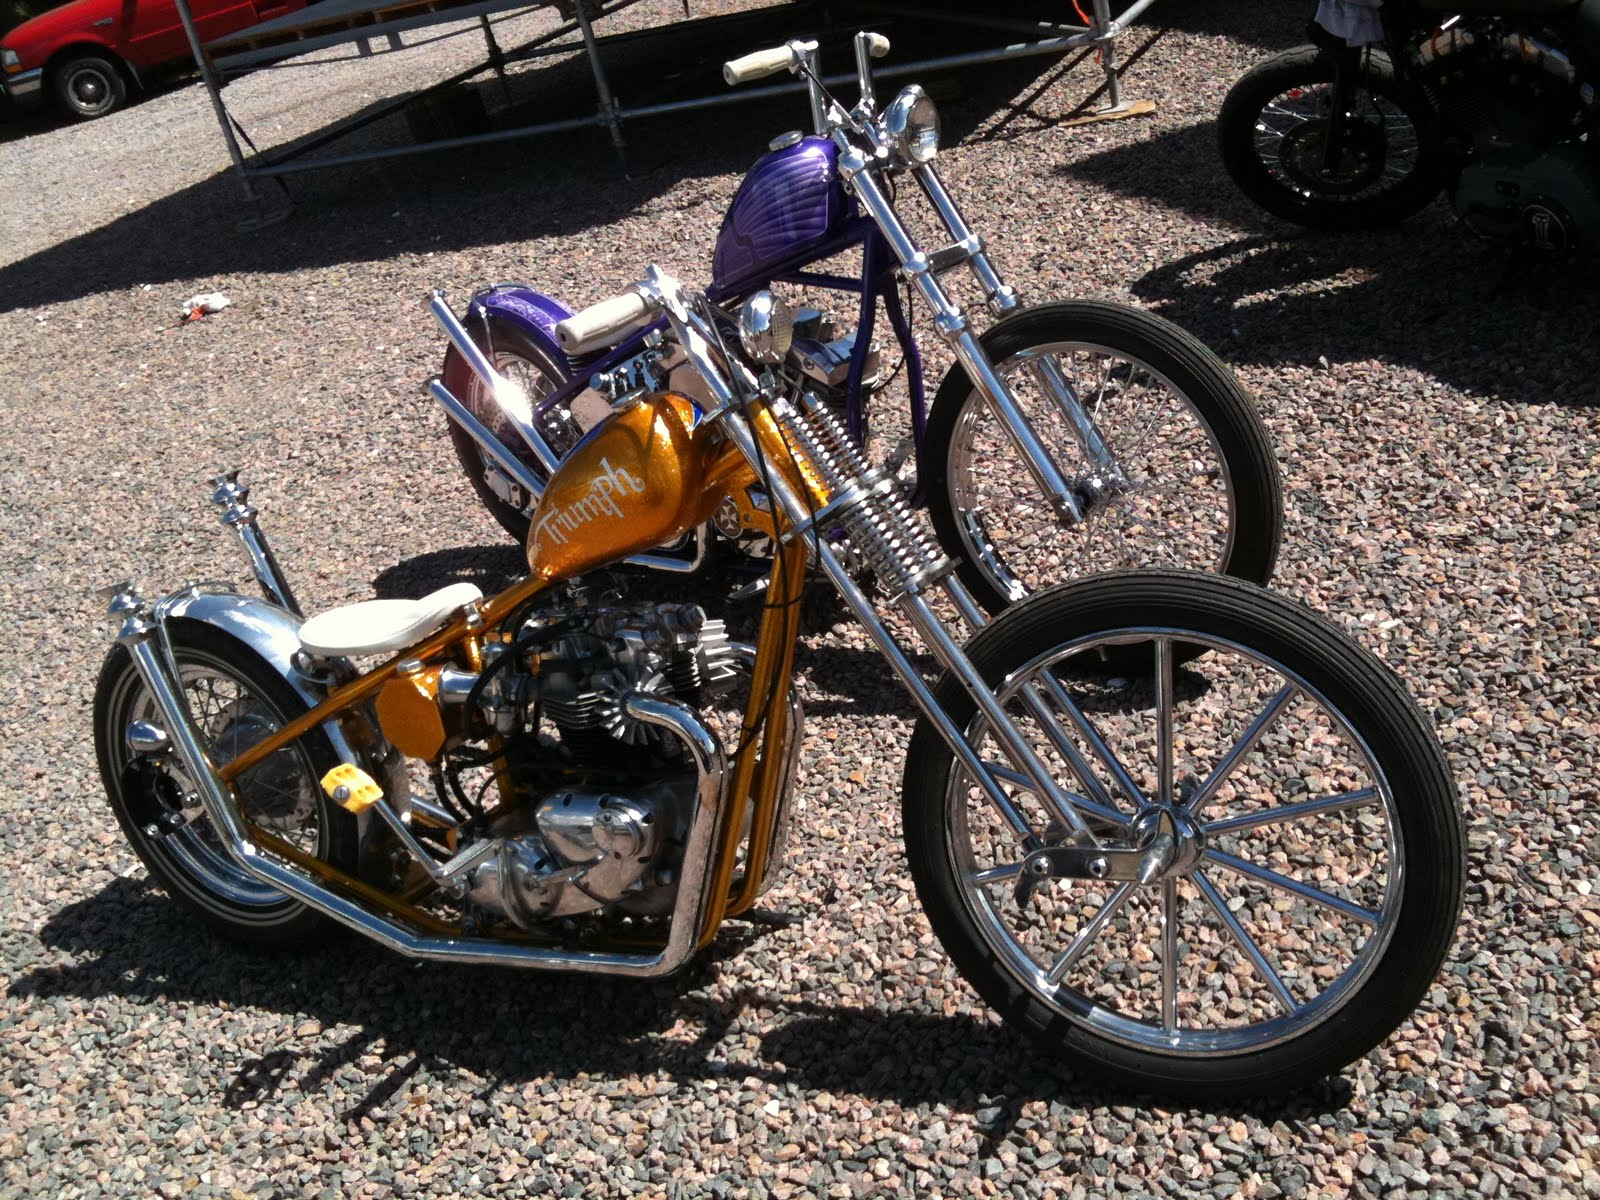 CUSTOM CHOPPER motorbike tuning bike hot rod rods f